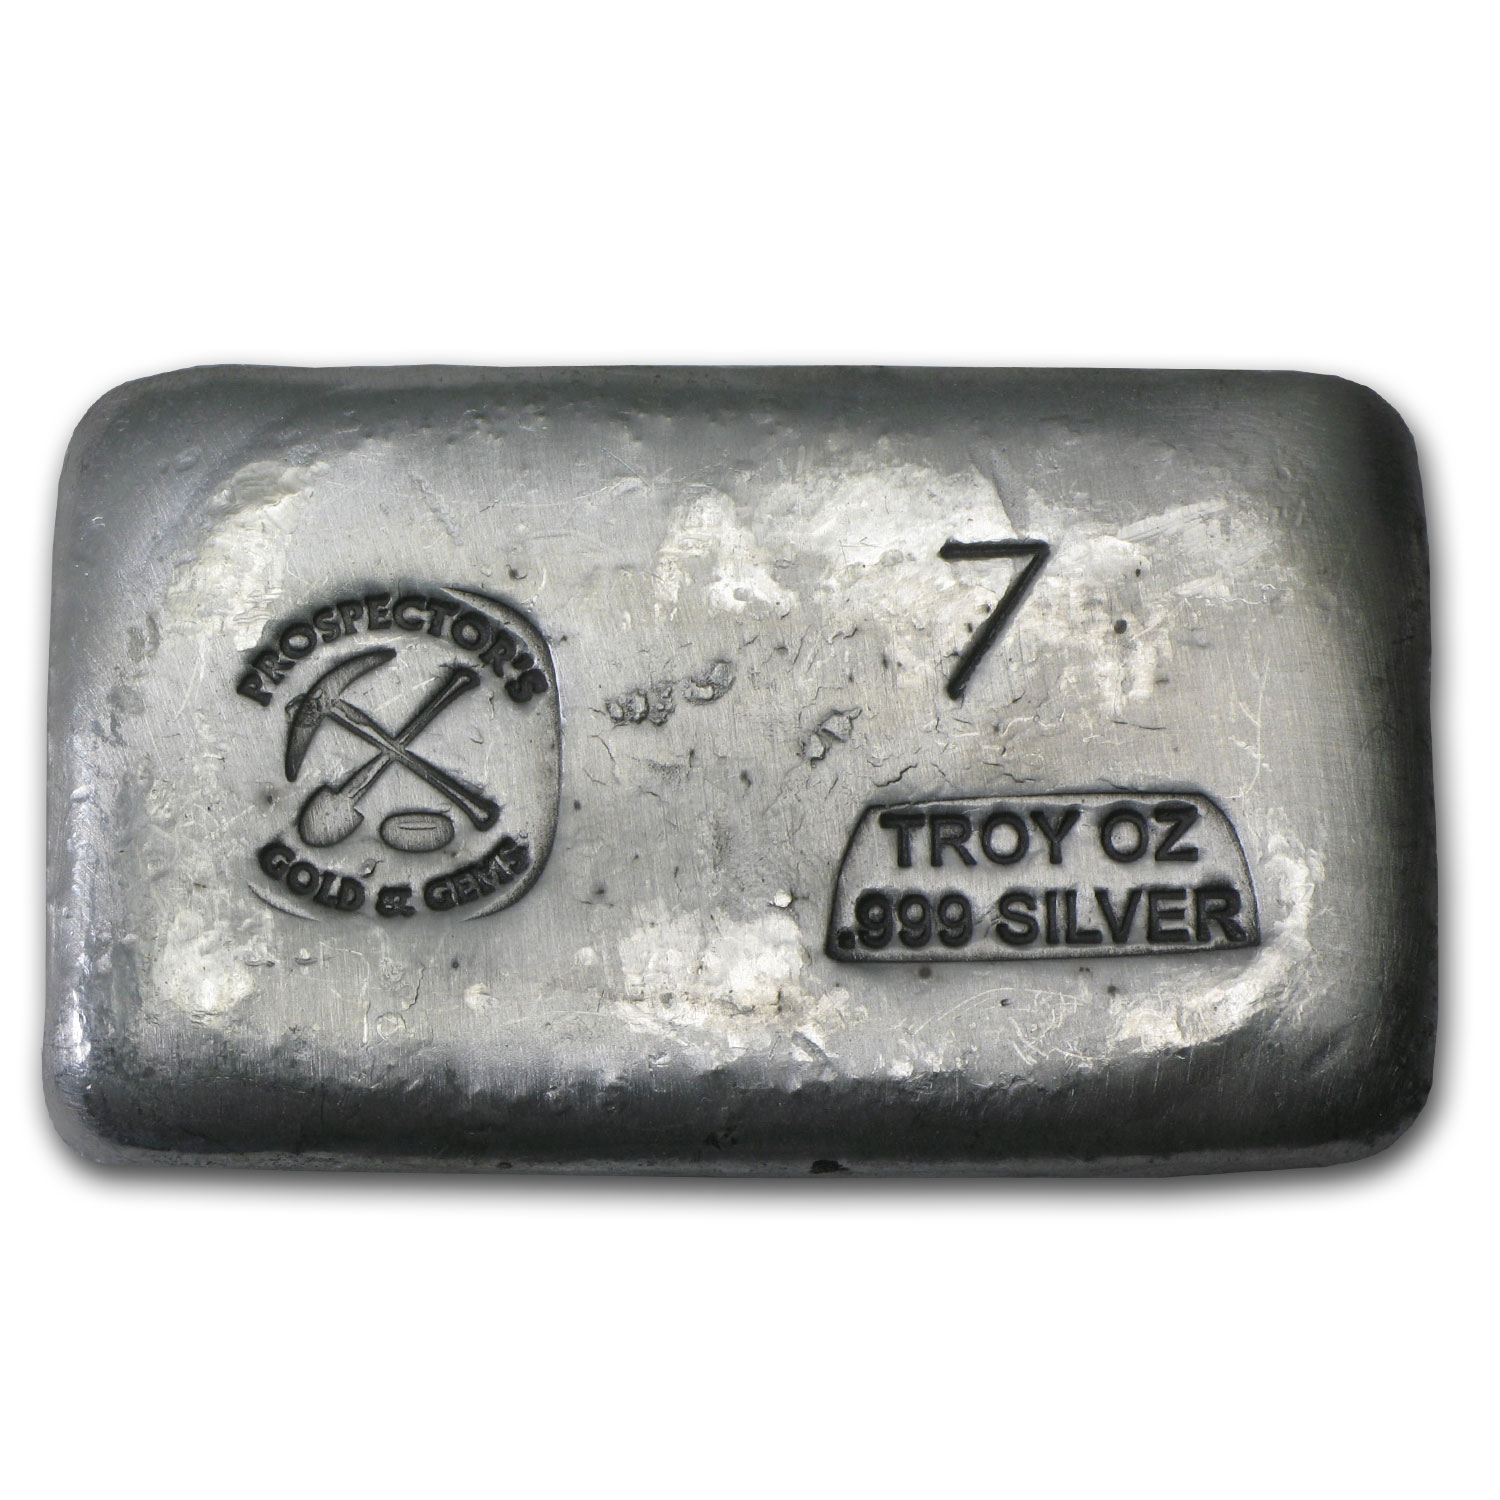 7 oz Silver Bars - Prospector's Gold & Gems